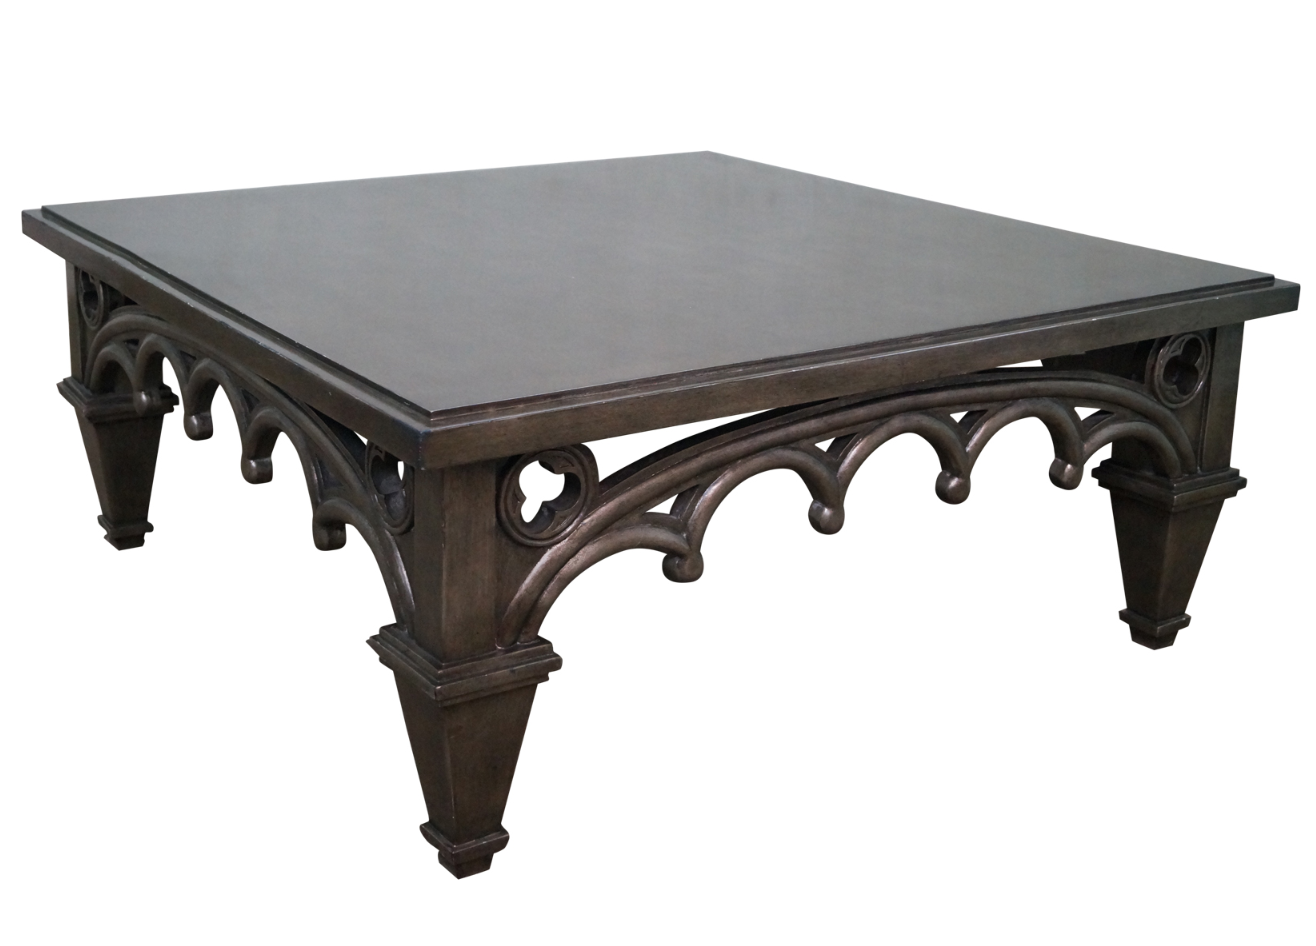 Gothic Couchtisch Gothic-style Painted Coffee Table | Painted Coffee Tables ...